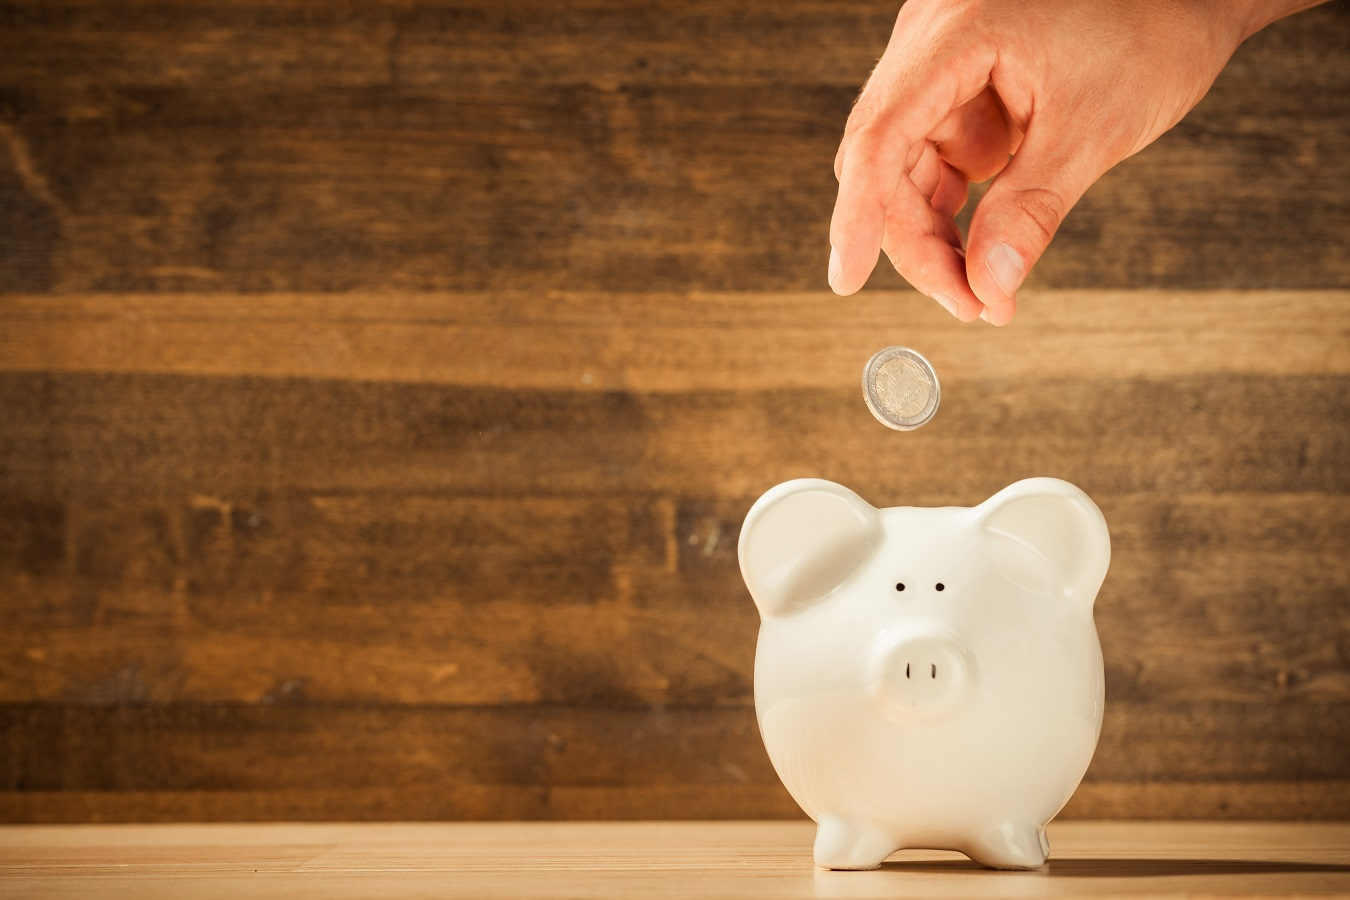 Which is better? Paying off debt or saving money